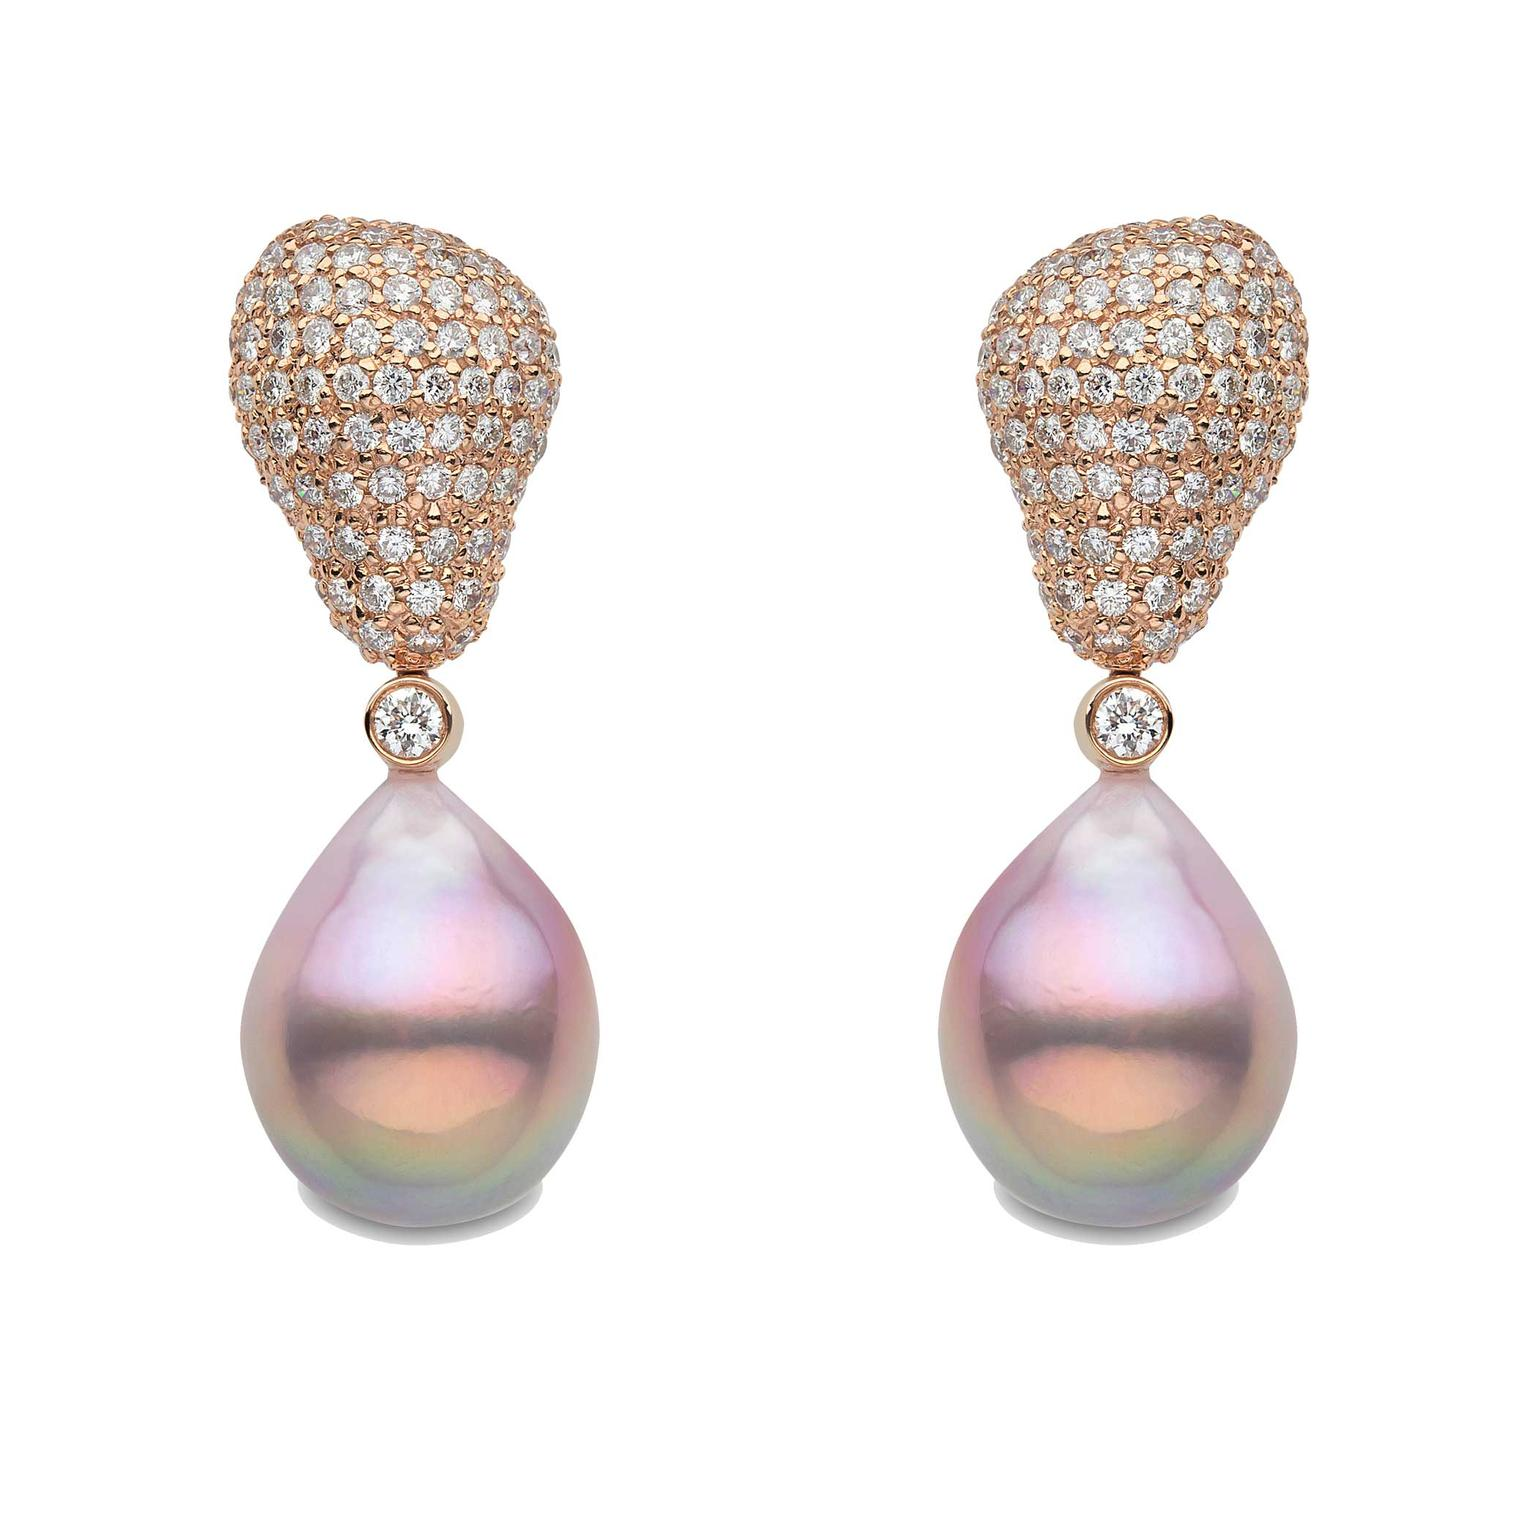 Yoko London freshwater pearl earrings